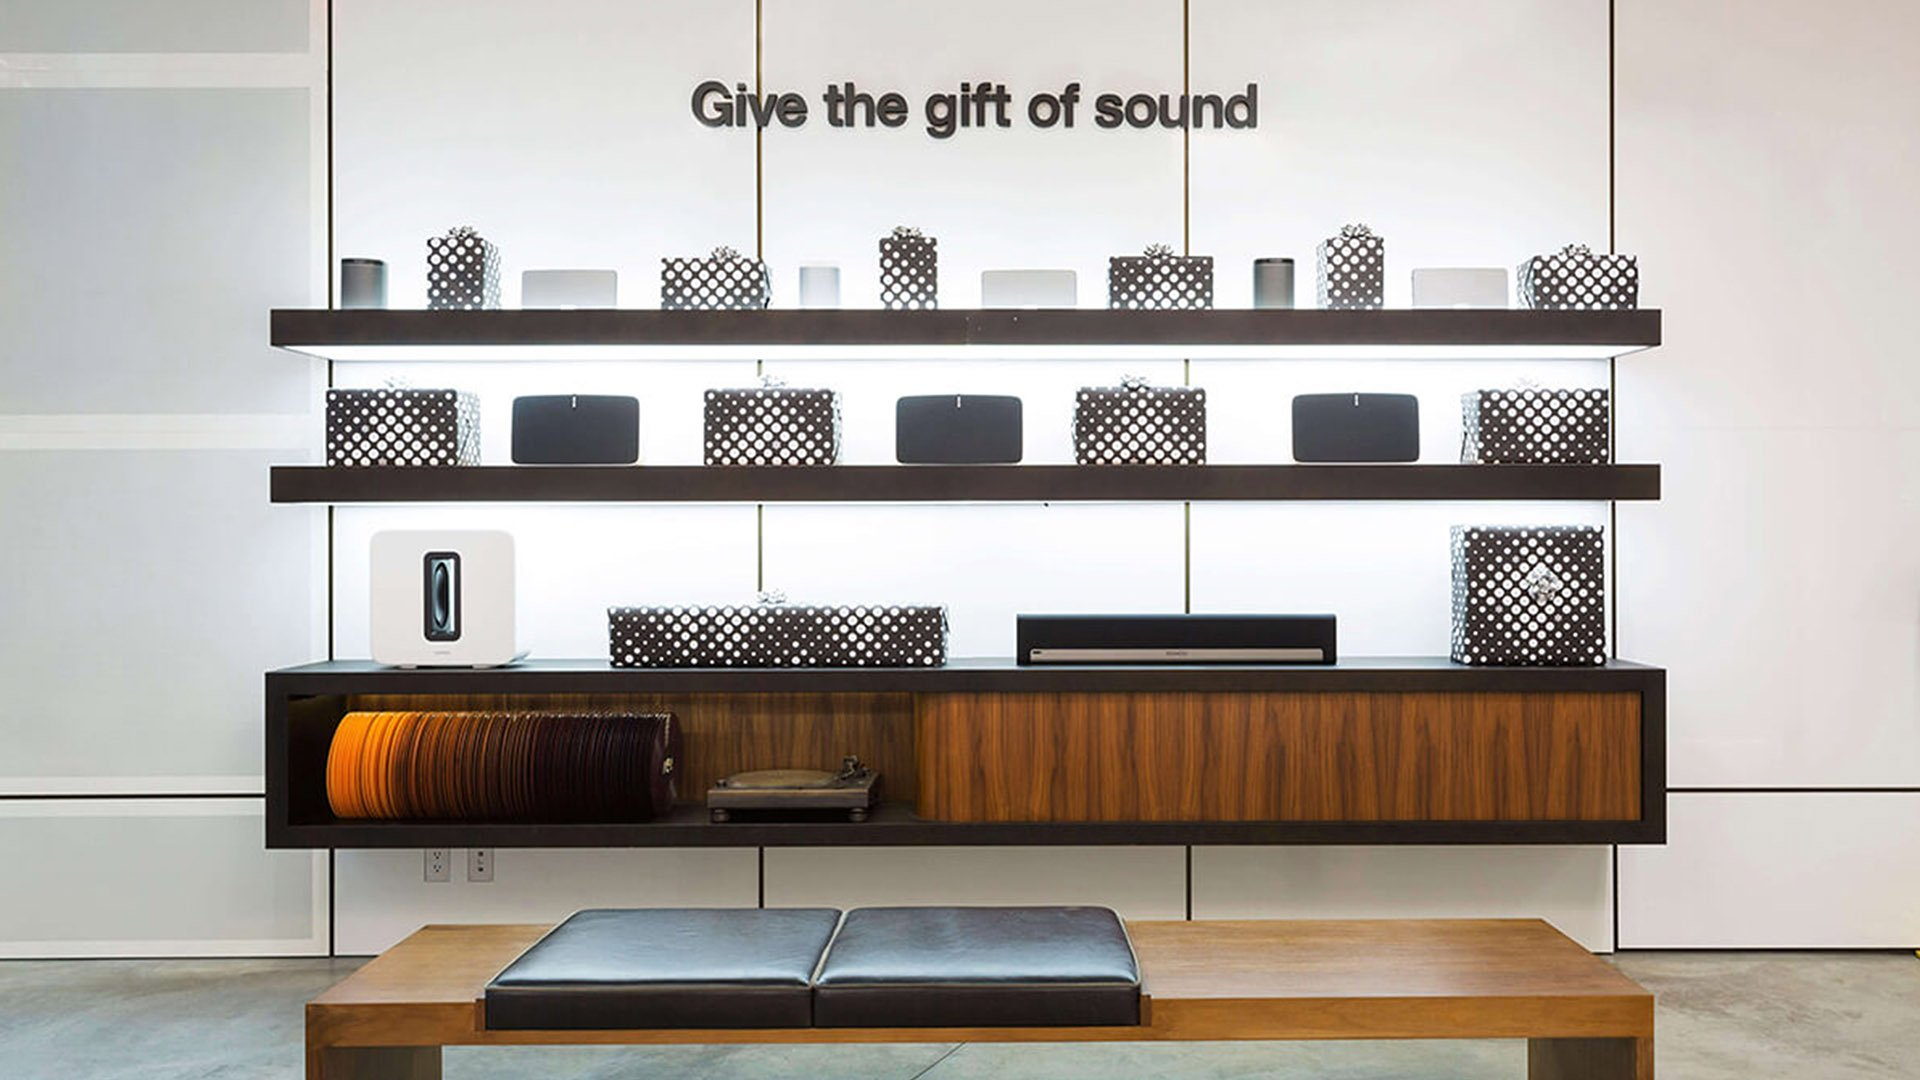 Sonos soho display